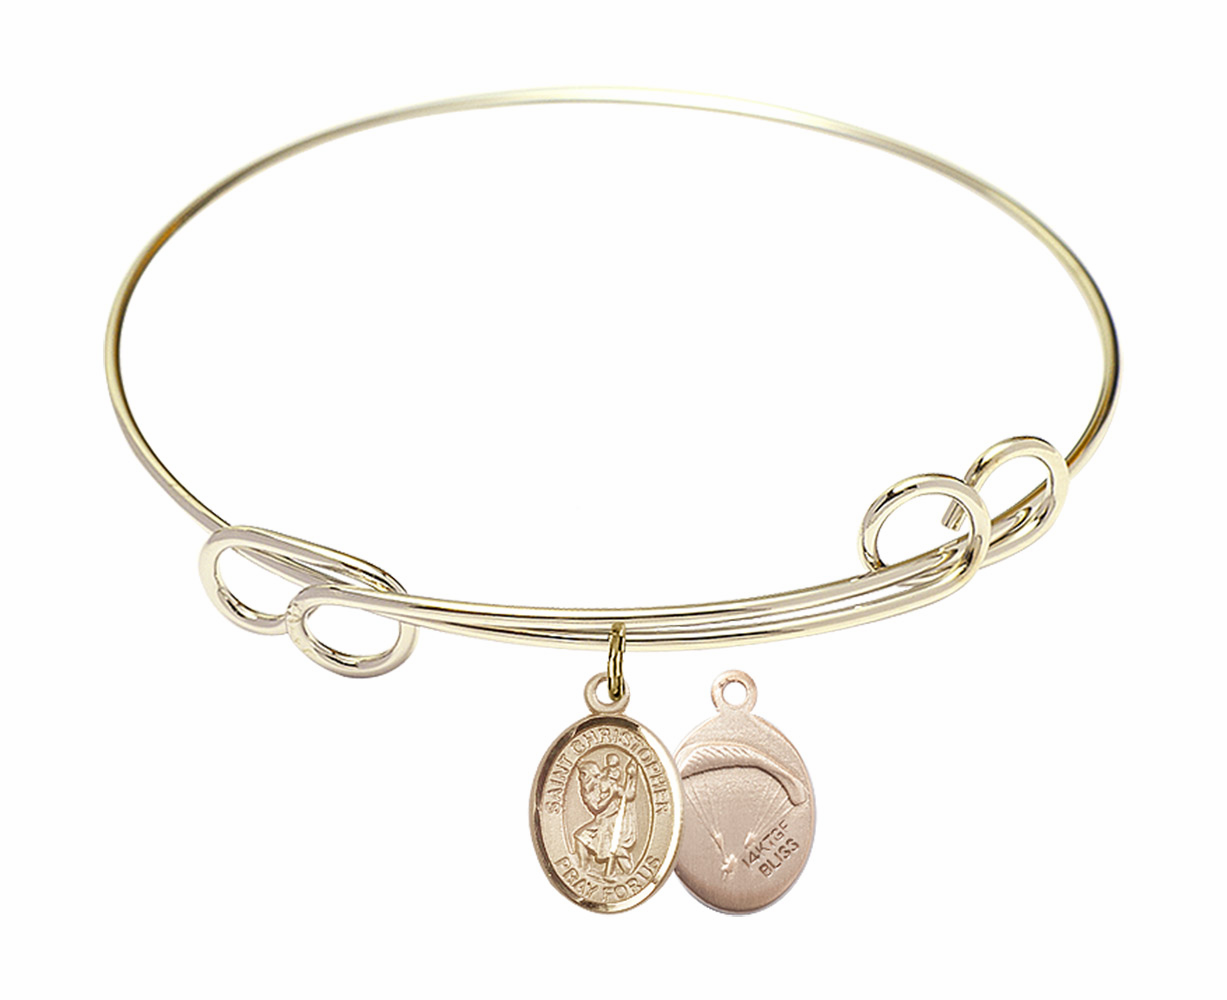 Gold-Filled Twisted St Christopher Paratrooper Bangle Charm Bracelet by Bliss